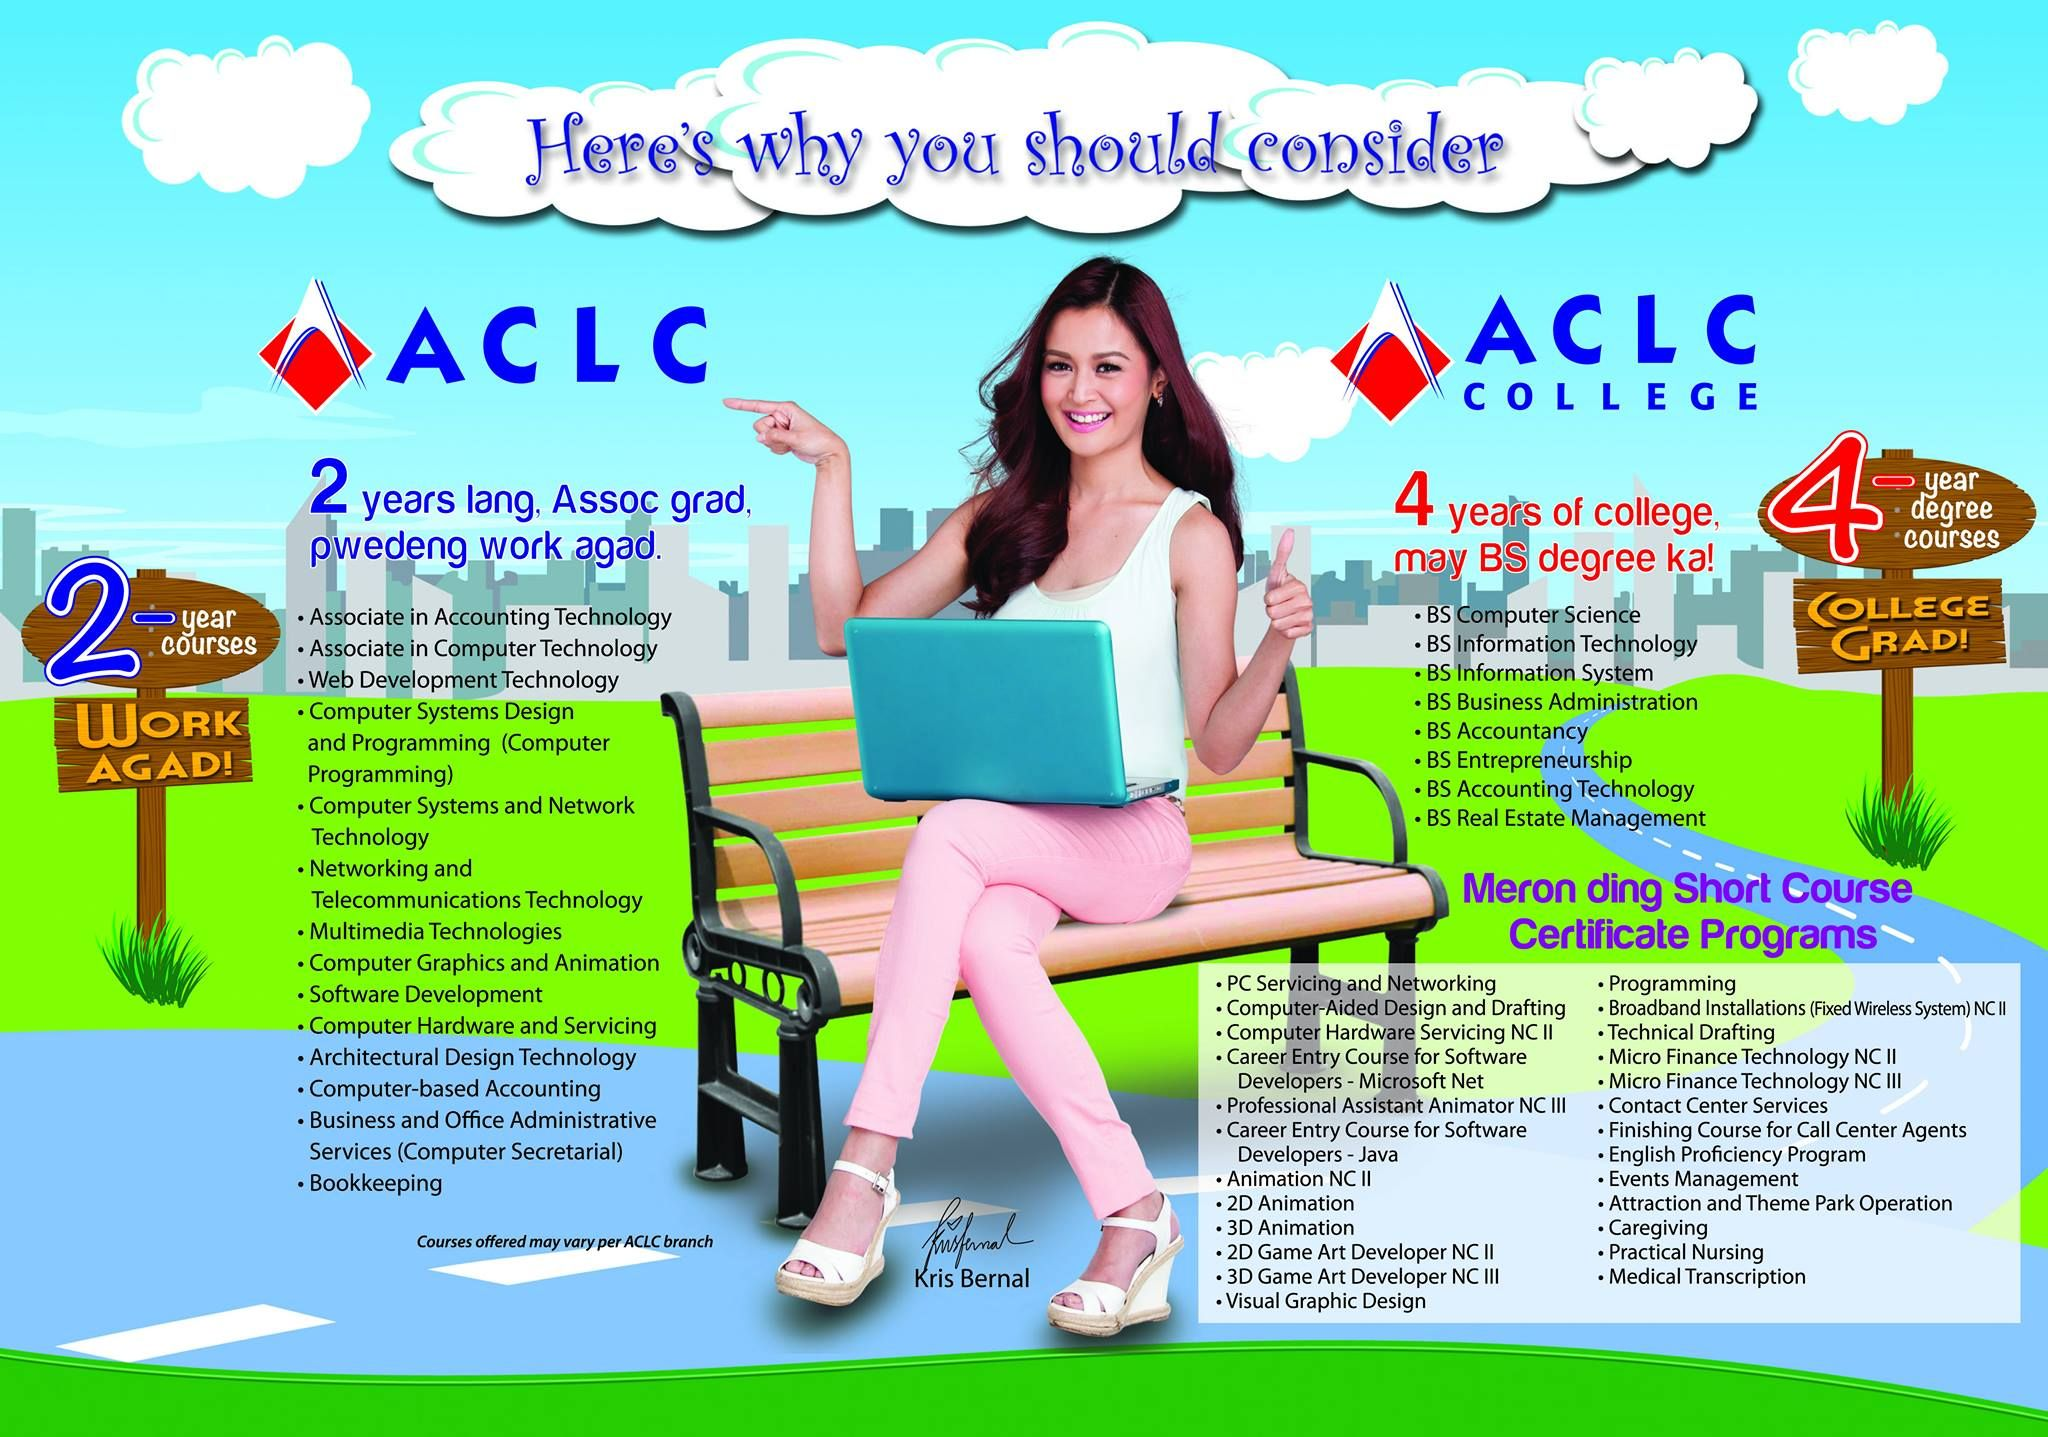 2 years 3 years or short course certificate program sa aclc 2 years 3 years or short course certificate program sa aclc madami kang 1betcityfo Images